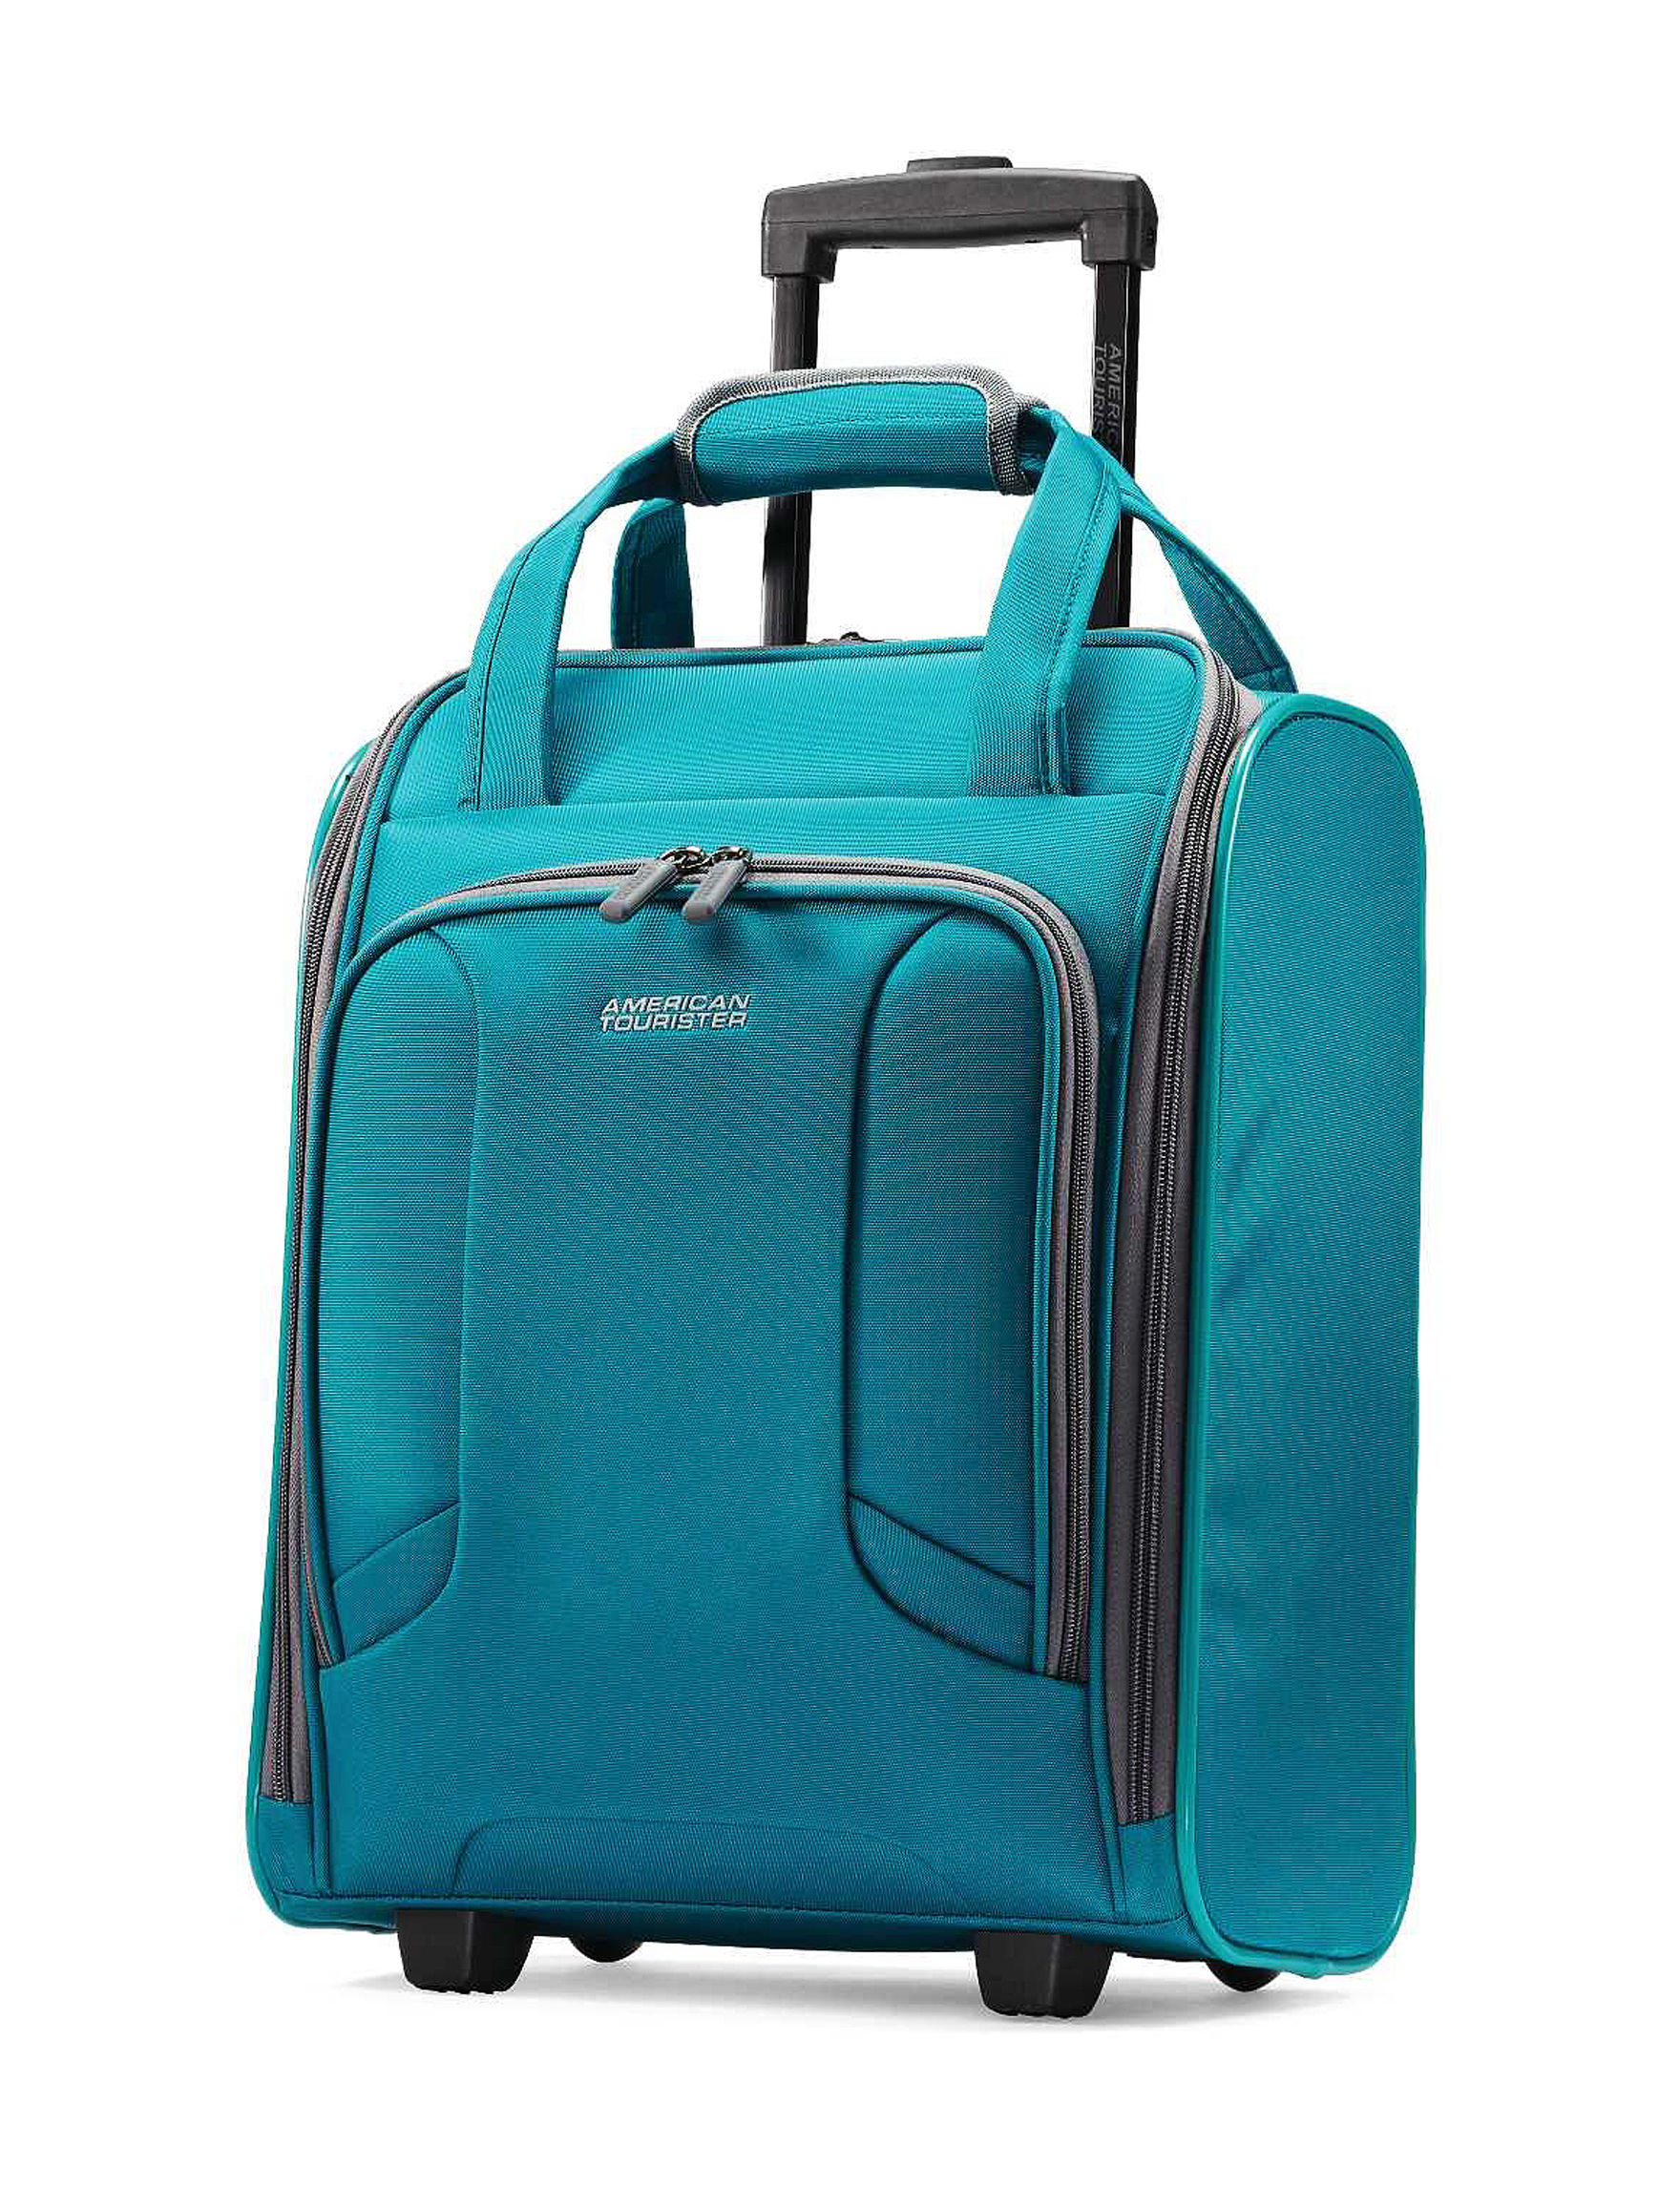 American Tourister Teal Weekend Bags